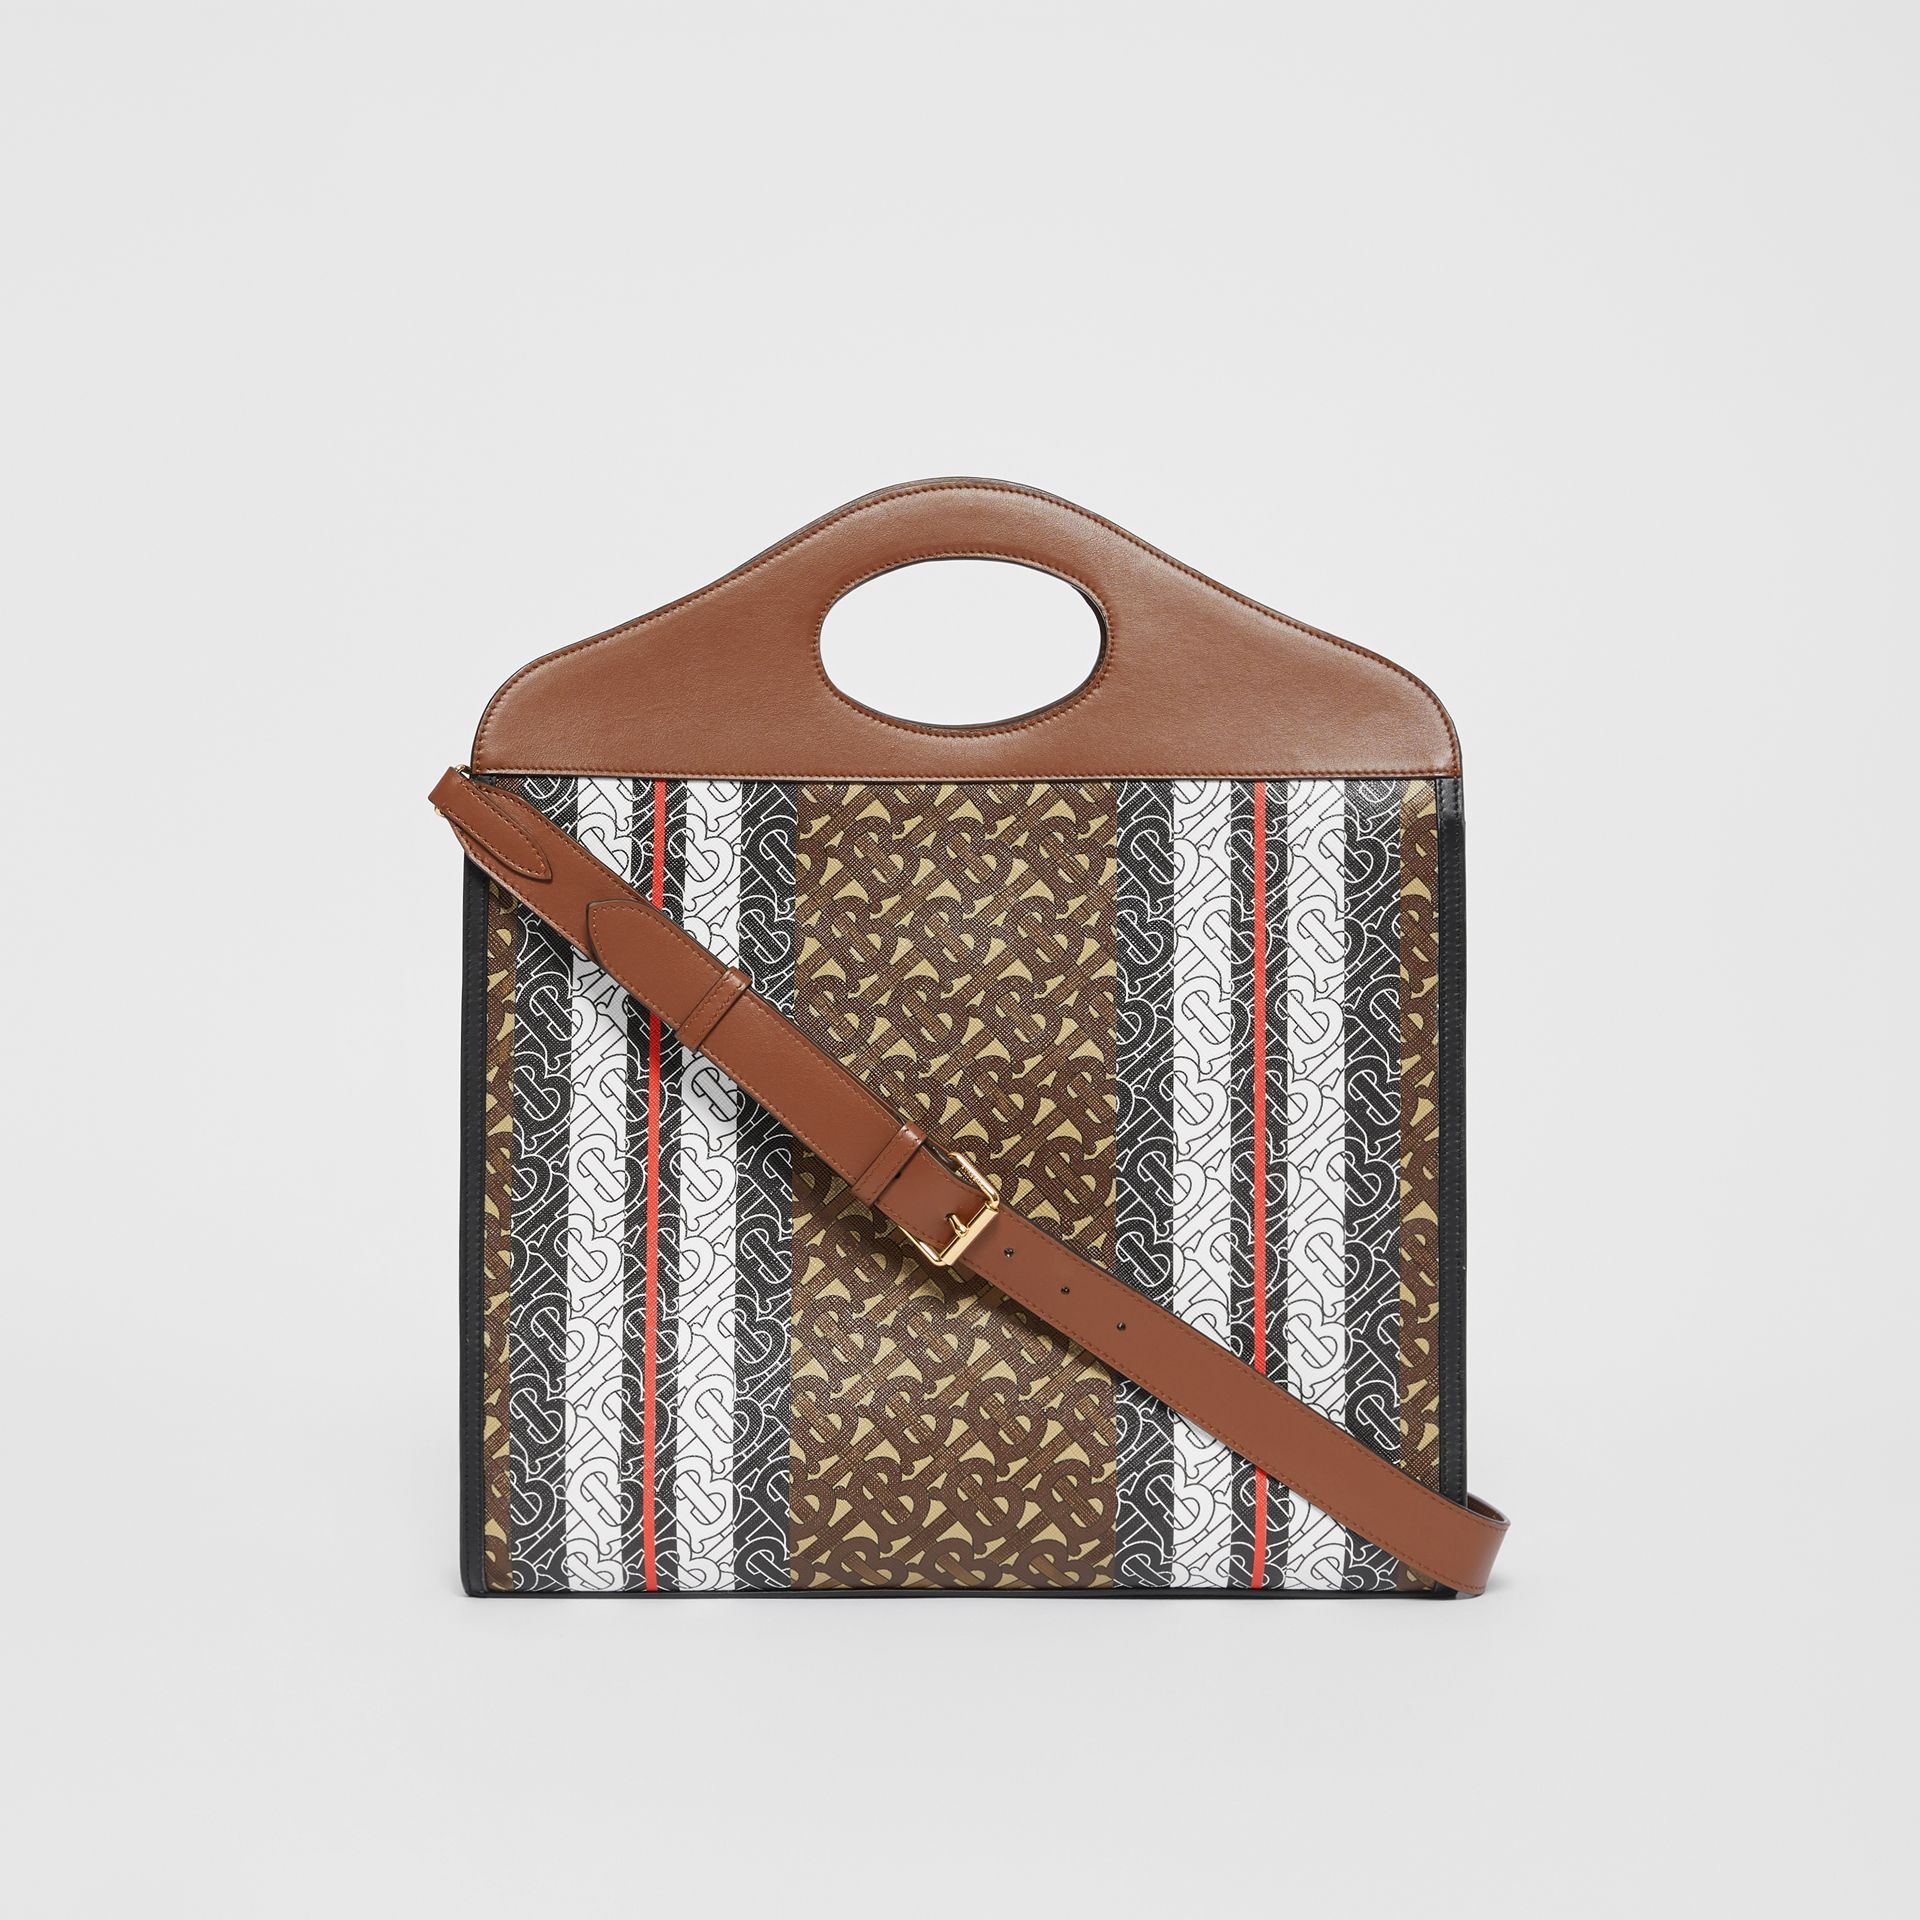 Medium Monogram Stripe E-canvas Pocket Bag in Bridle Brown - Women | Burberry Hong Kong S.A.R - gallery image 7